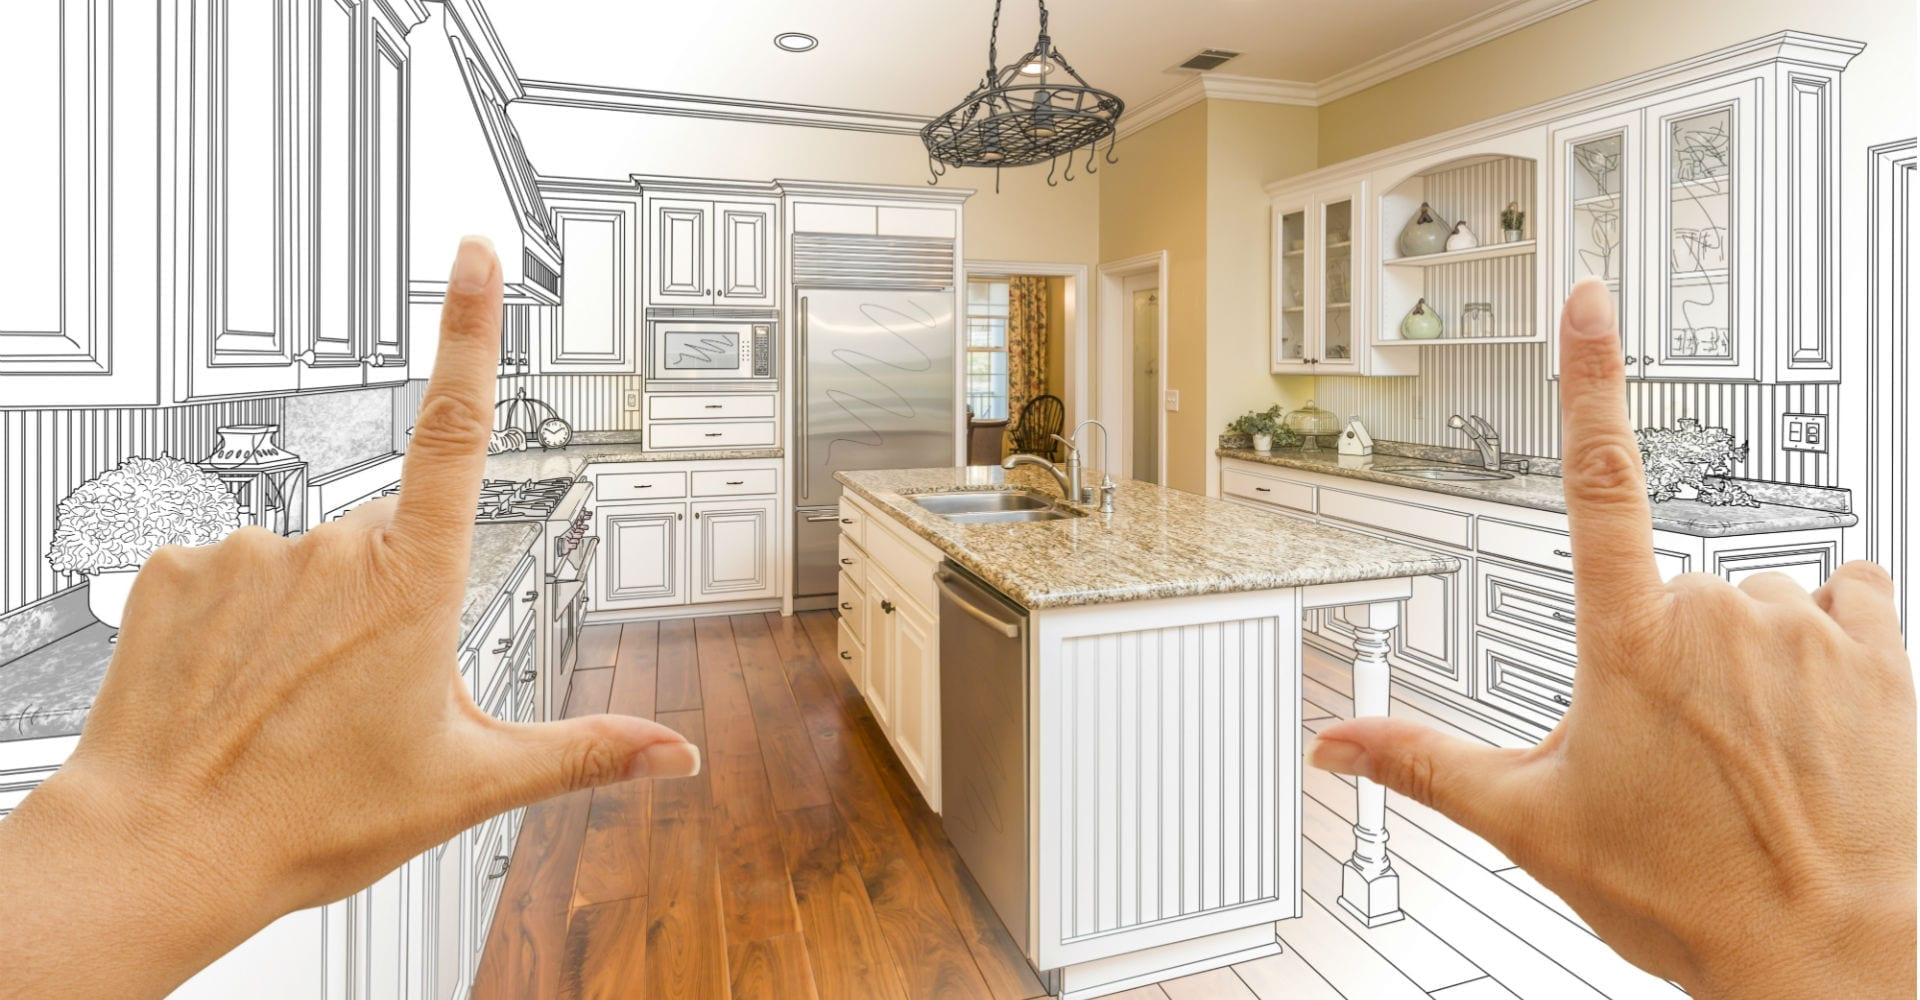 kitchen remodel 5 tips to maximize your budget stearns design build